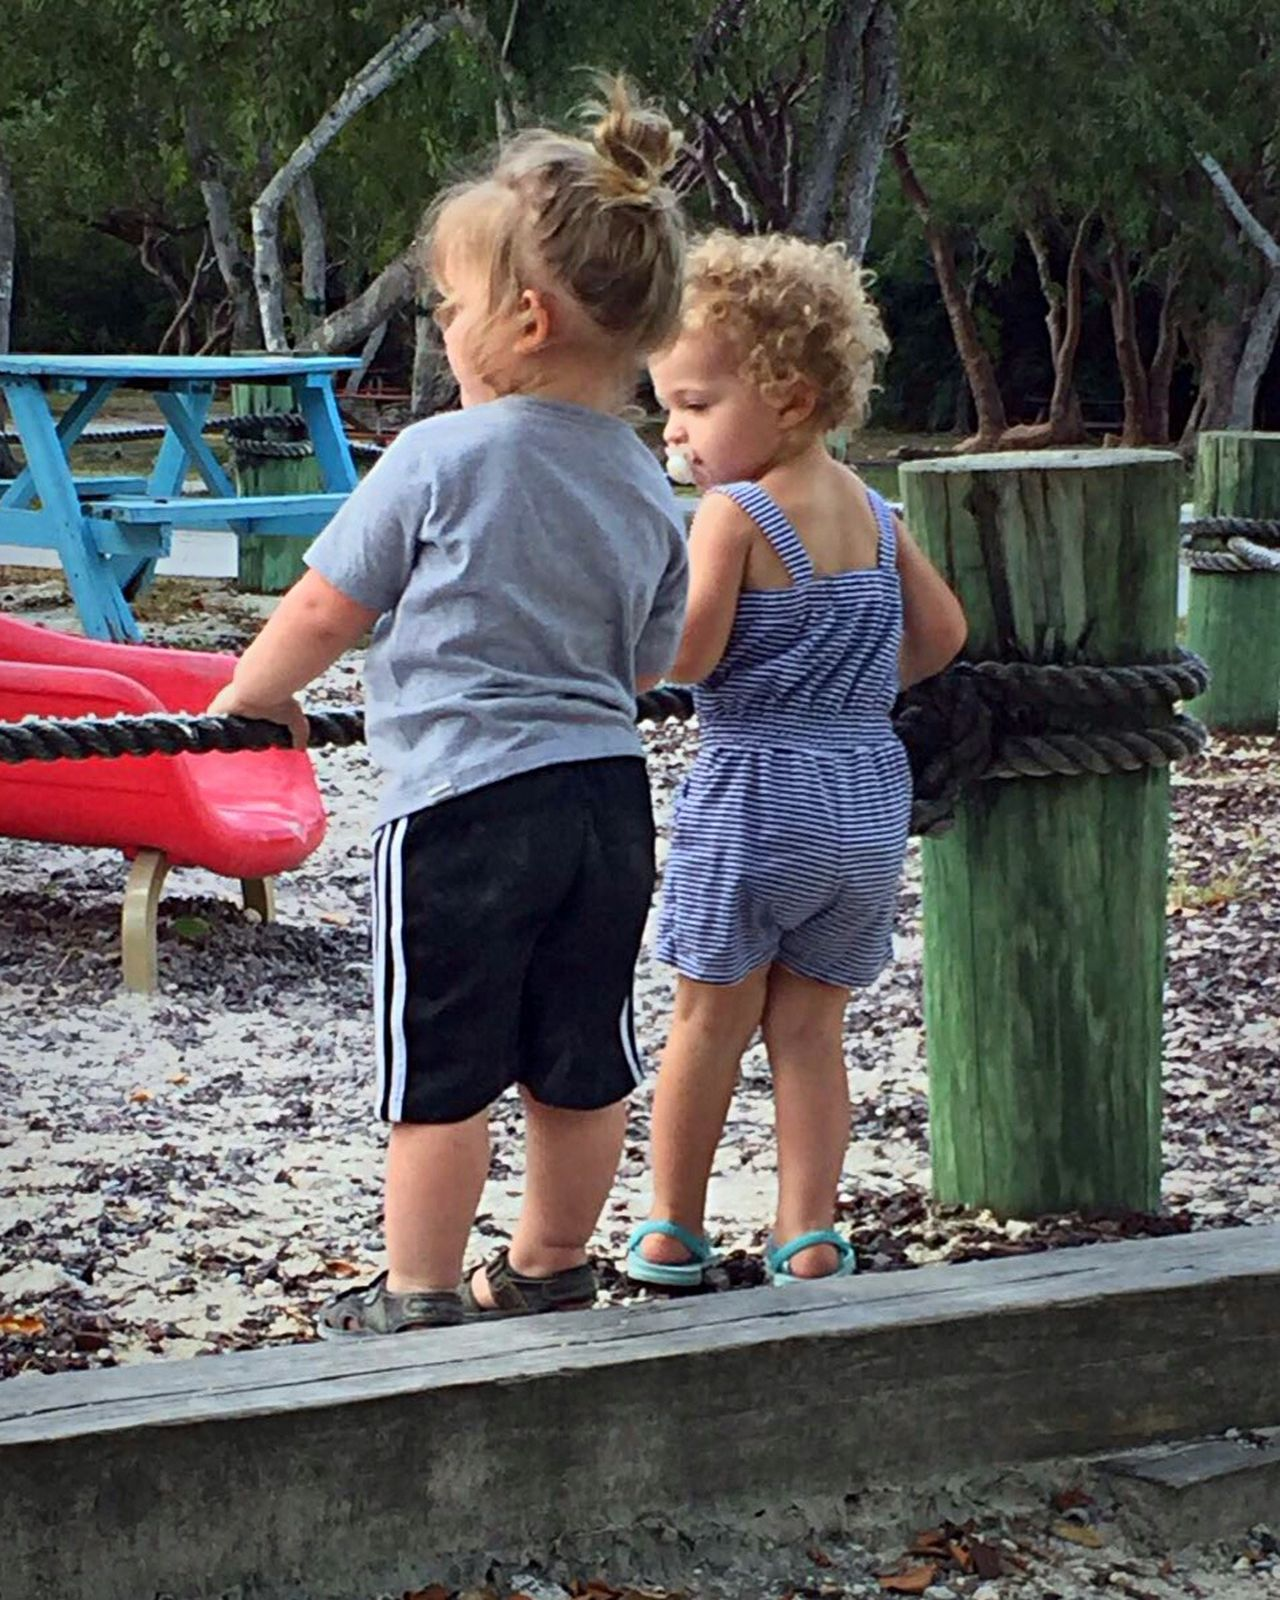 Family Childhood Togetherness Cousins  Children Playground Outdoors Talking Together Playing Happy Girl And Boy Child Cute Sweet Day Vacation Fun Summer Toddlers  Standing Playtime Close Friends Forever